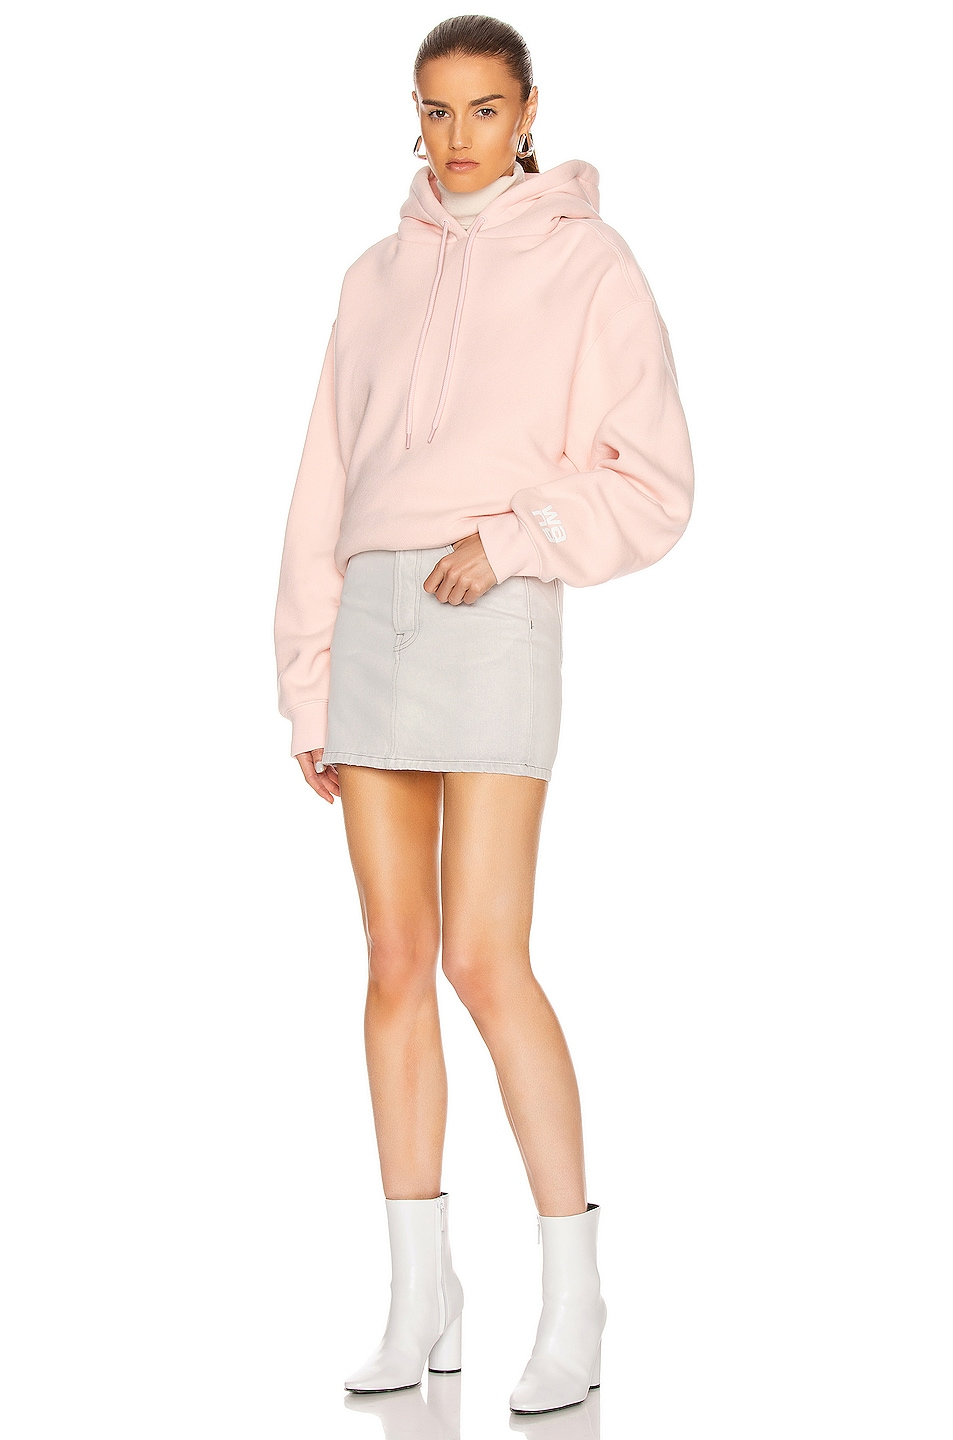 Image 5 of T by Alexander Wang Puff Paint Bubble Hoodie in Light Melon